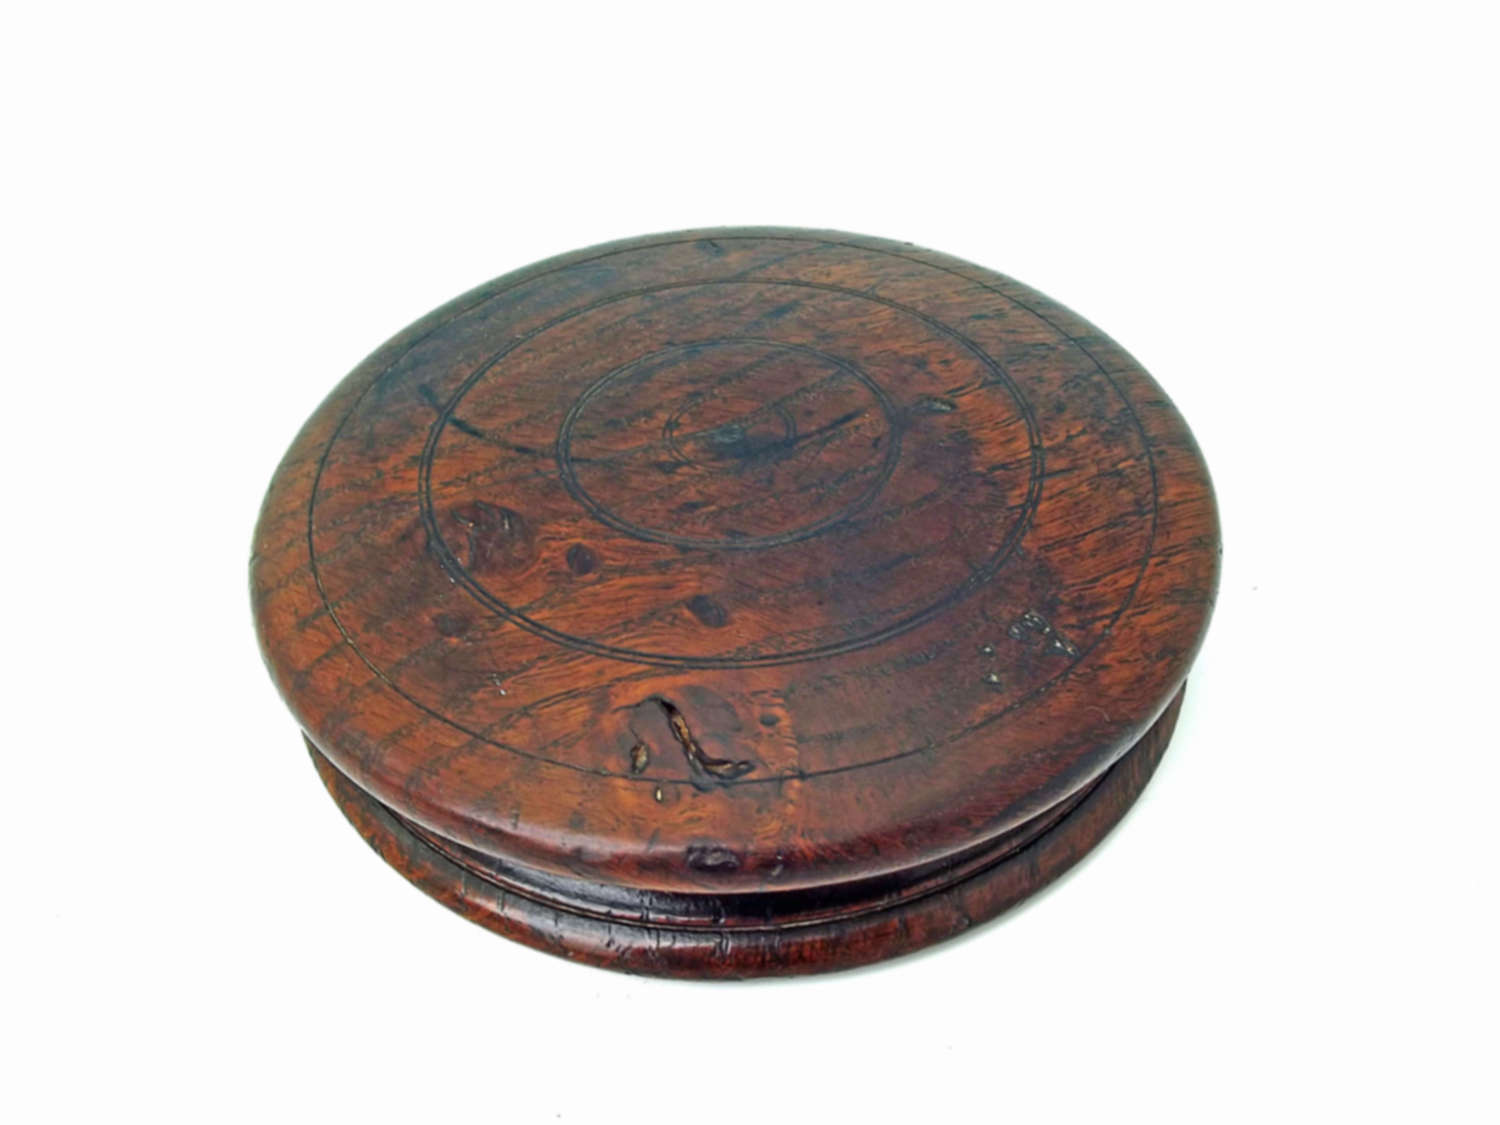 Antique 19thc Large Treen Turned Oak Box For Coasters.  English. C1840